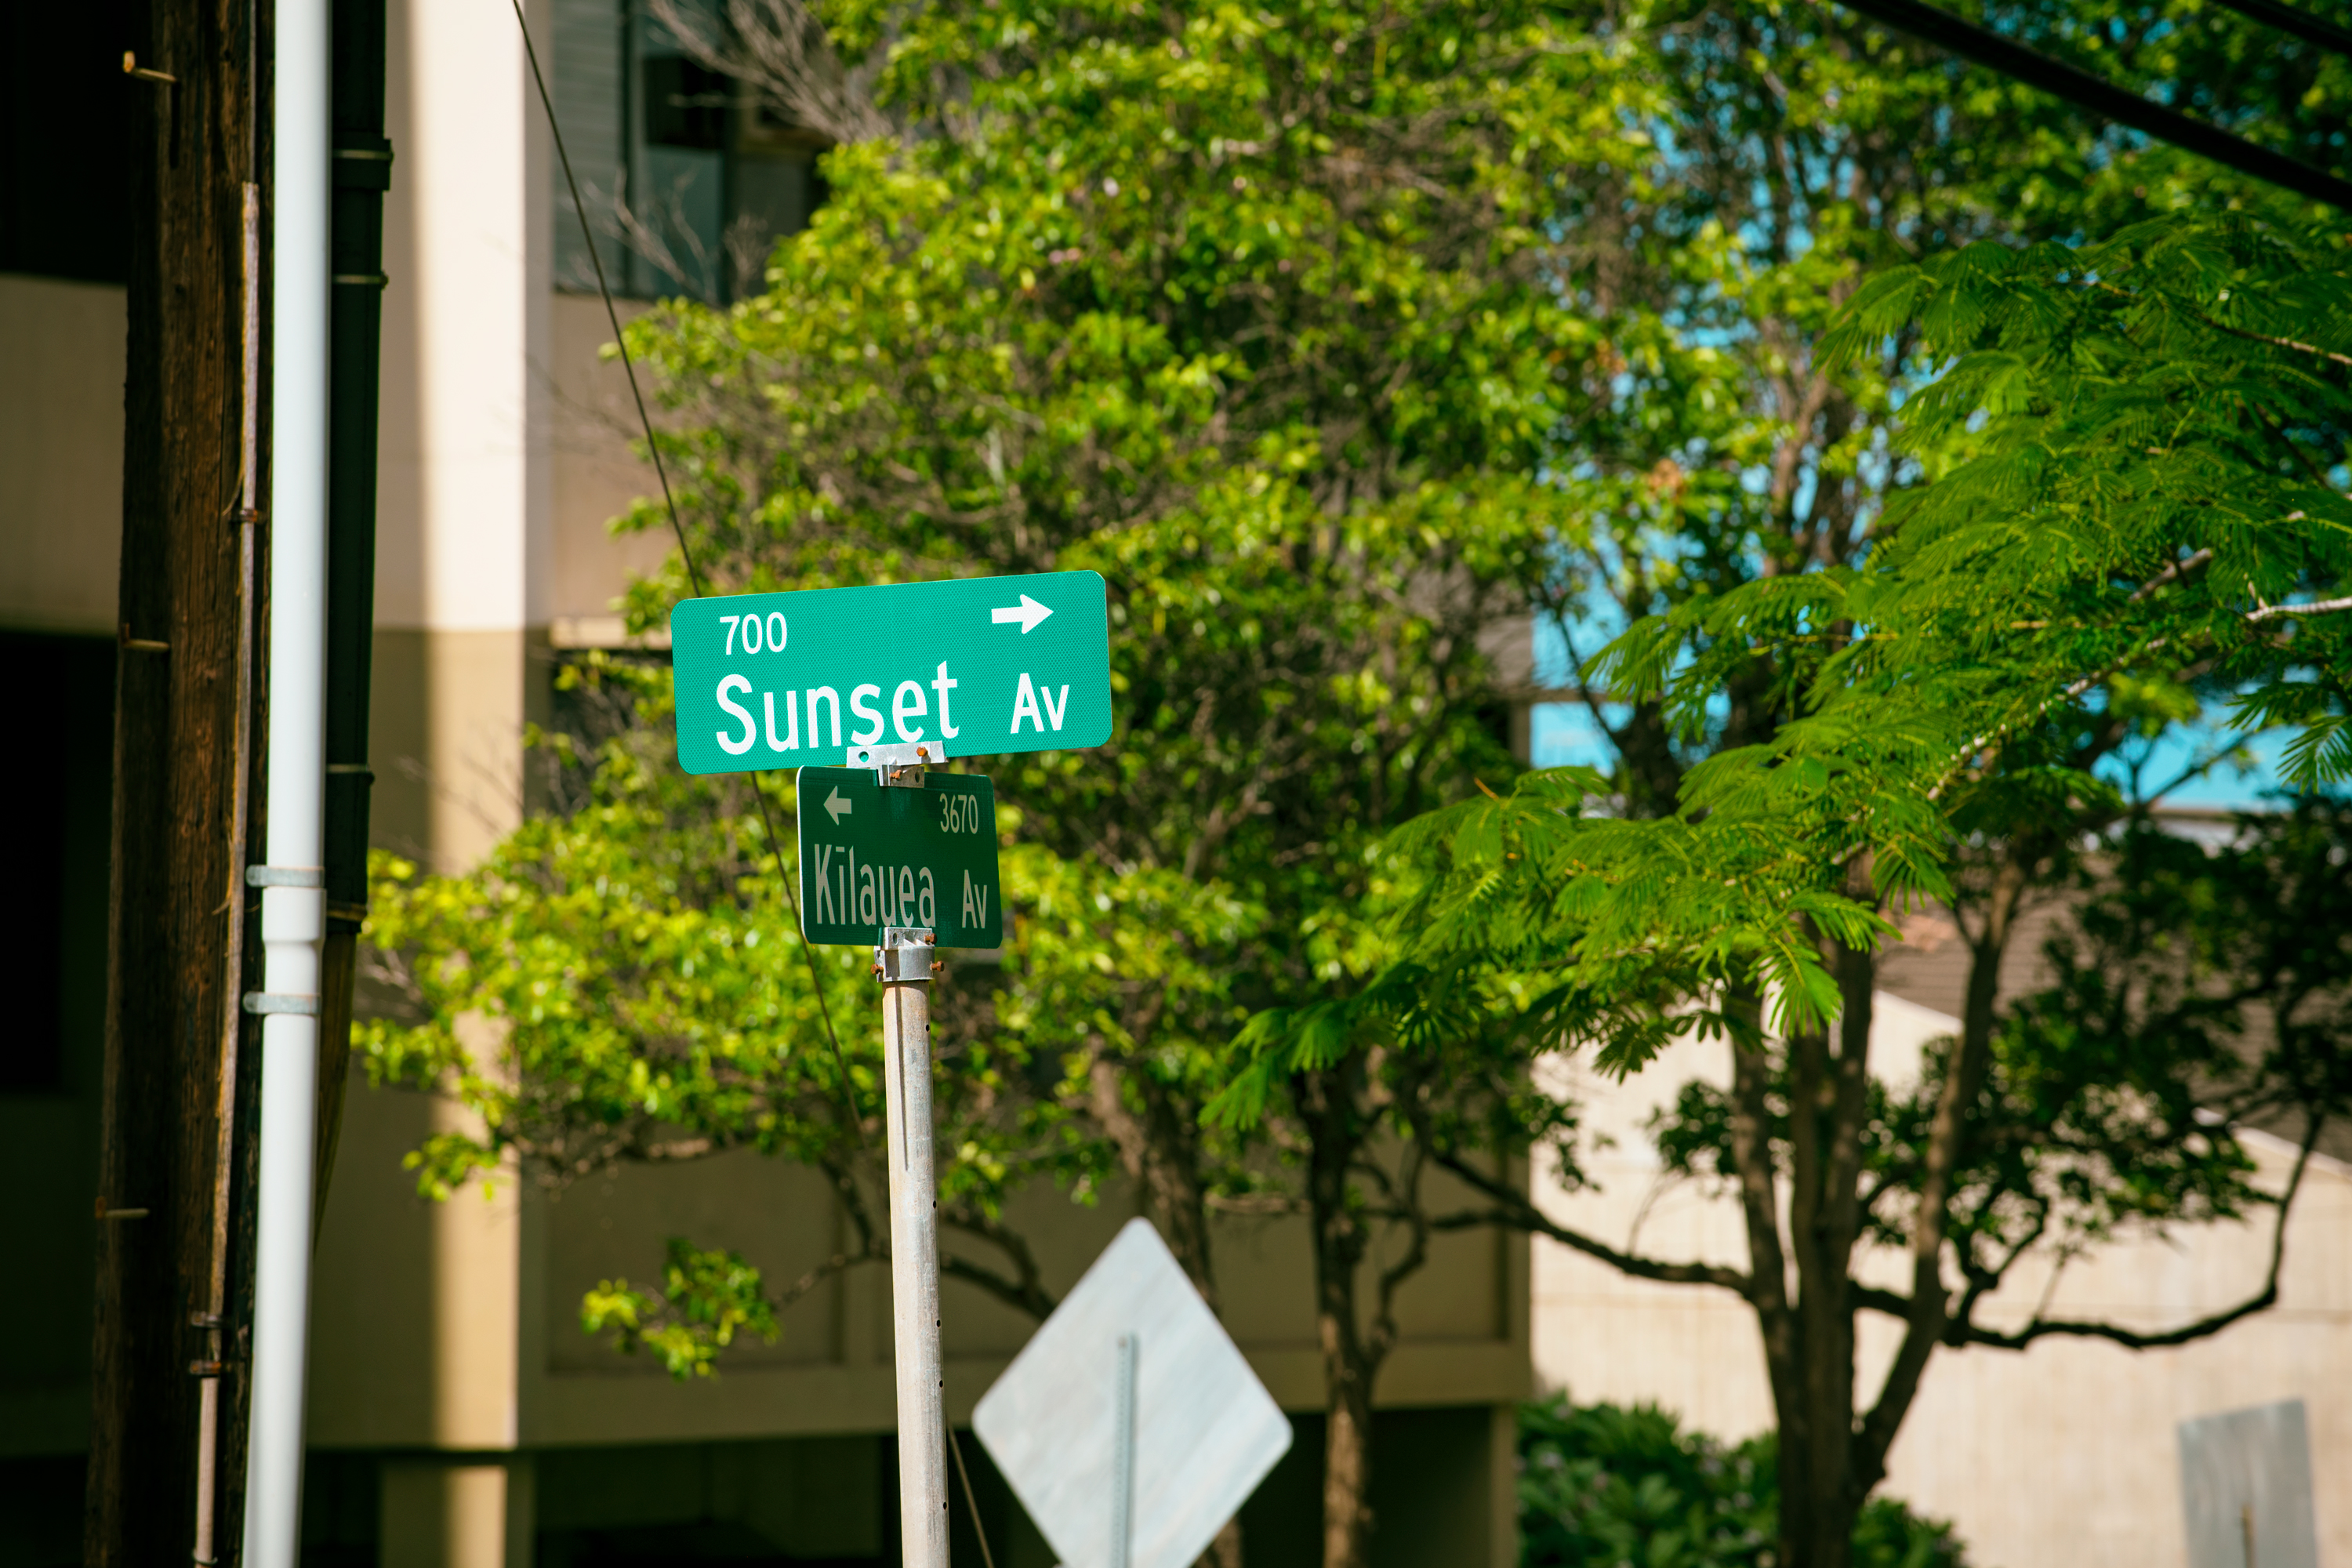 Street Sign, Sunset Ave.